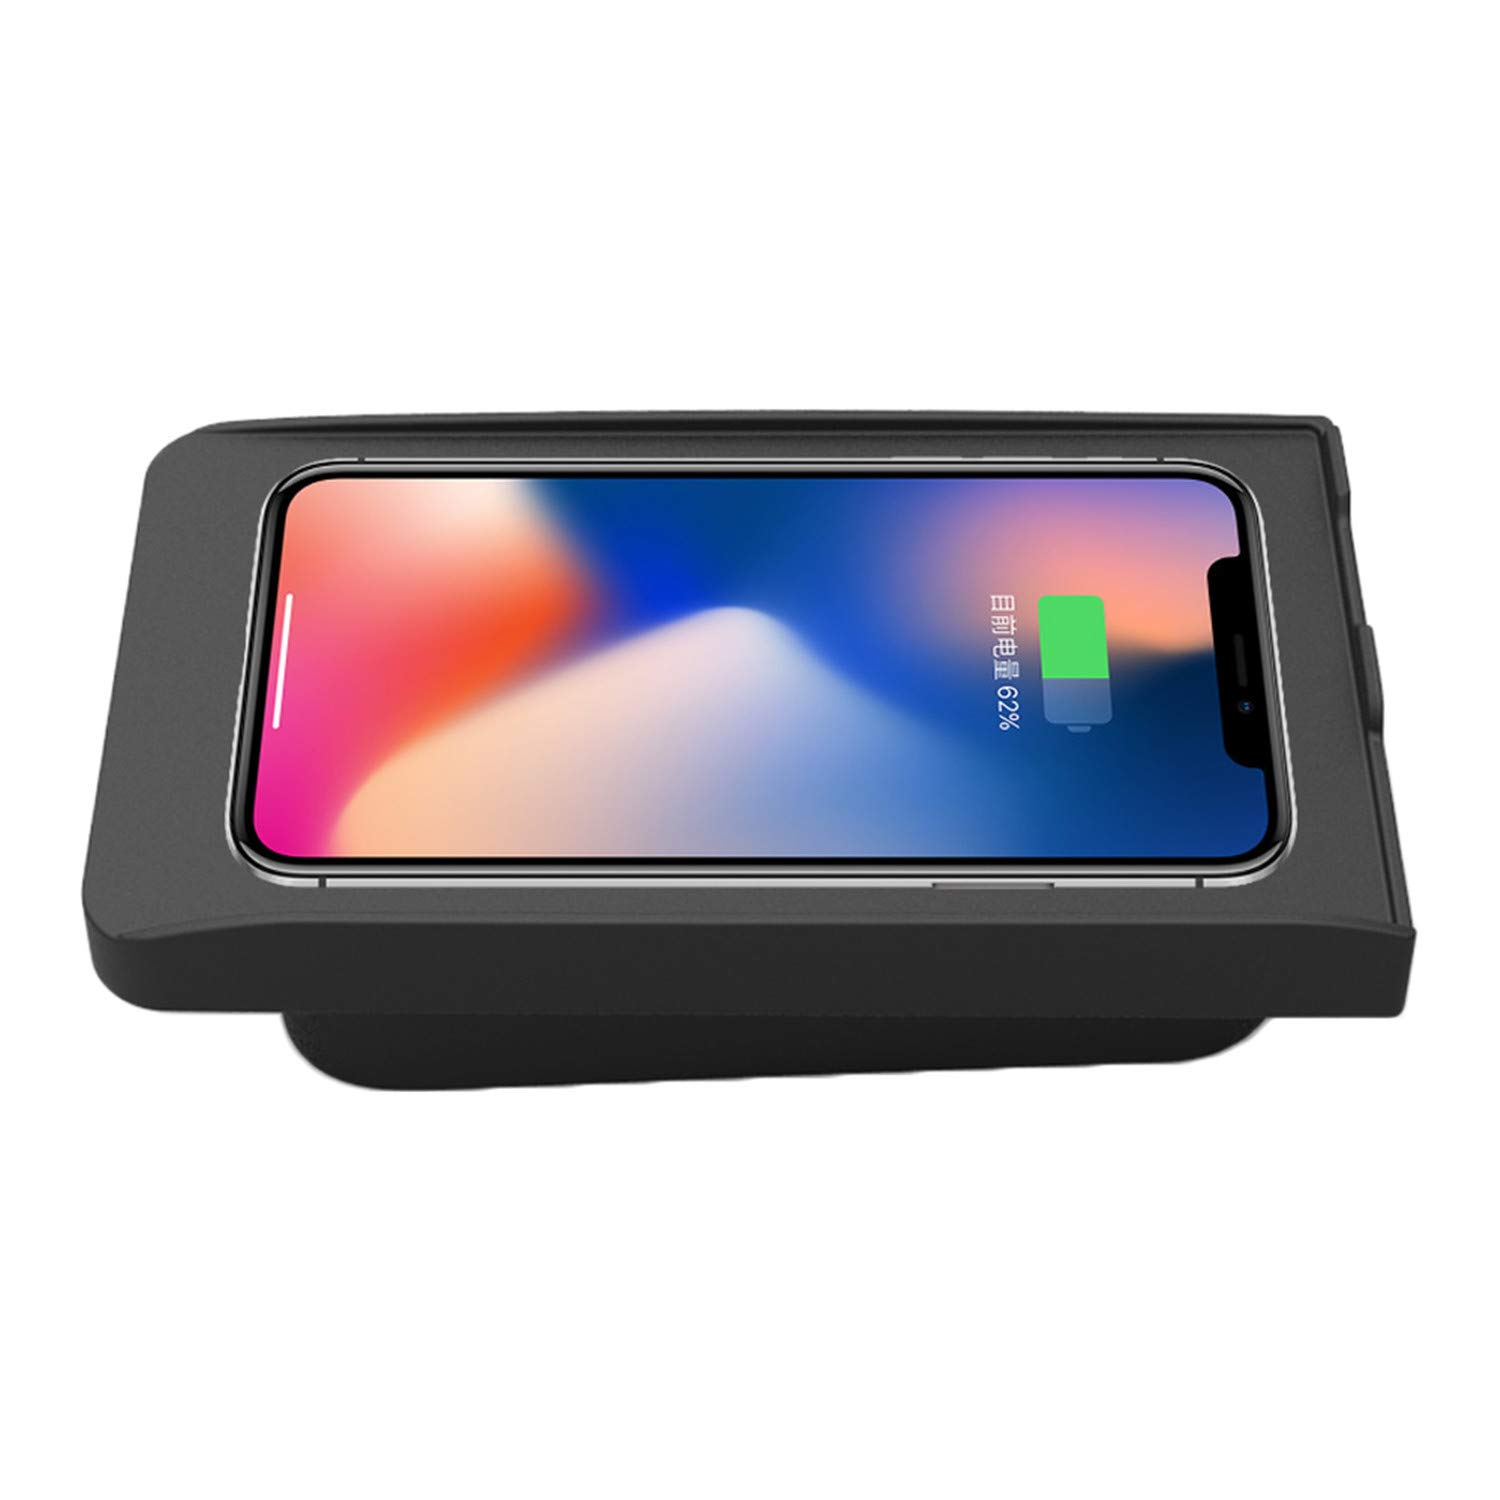 ZWNAV Wireless Car Charger Mount for Volvo XC90/XC60/S90L/V90 2017-2018, Qi Certified, 10W Fast Charging Compatible with iPhone XS/XR/X/8/8+, Samsung S9+ /S9 /S8/S7/Note 8 and Qi Enabled Devices